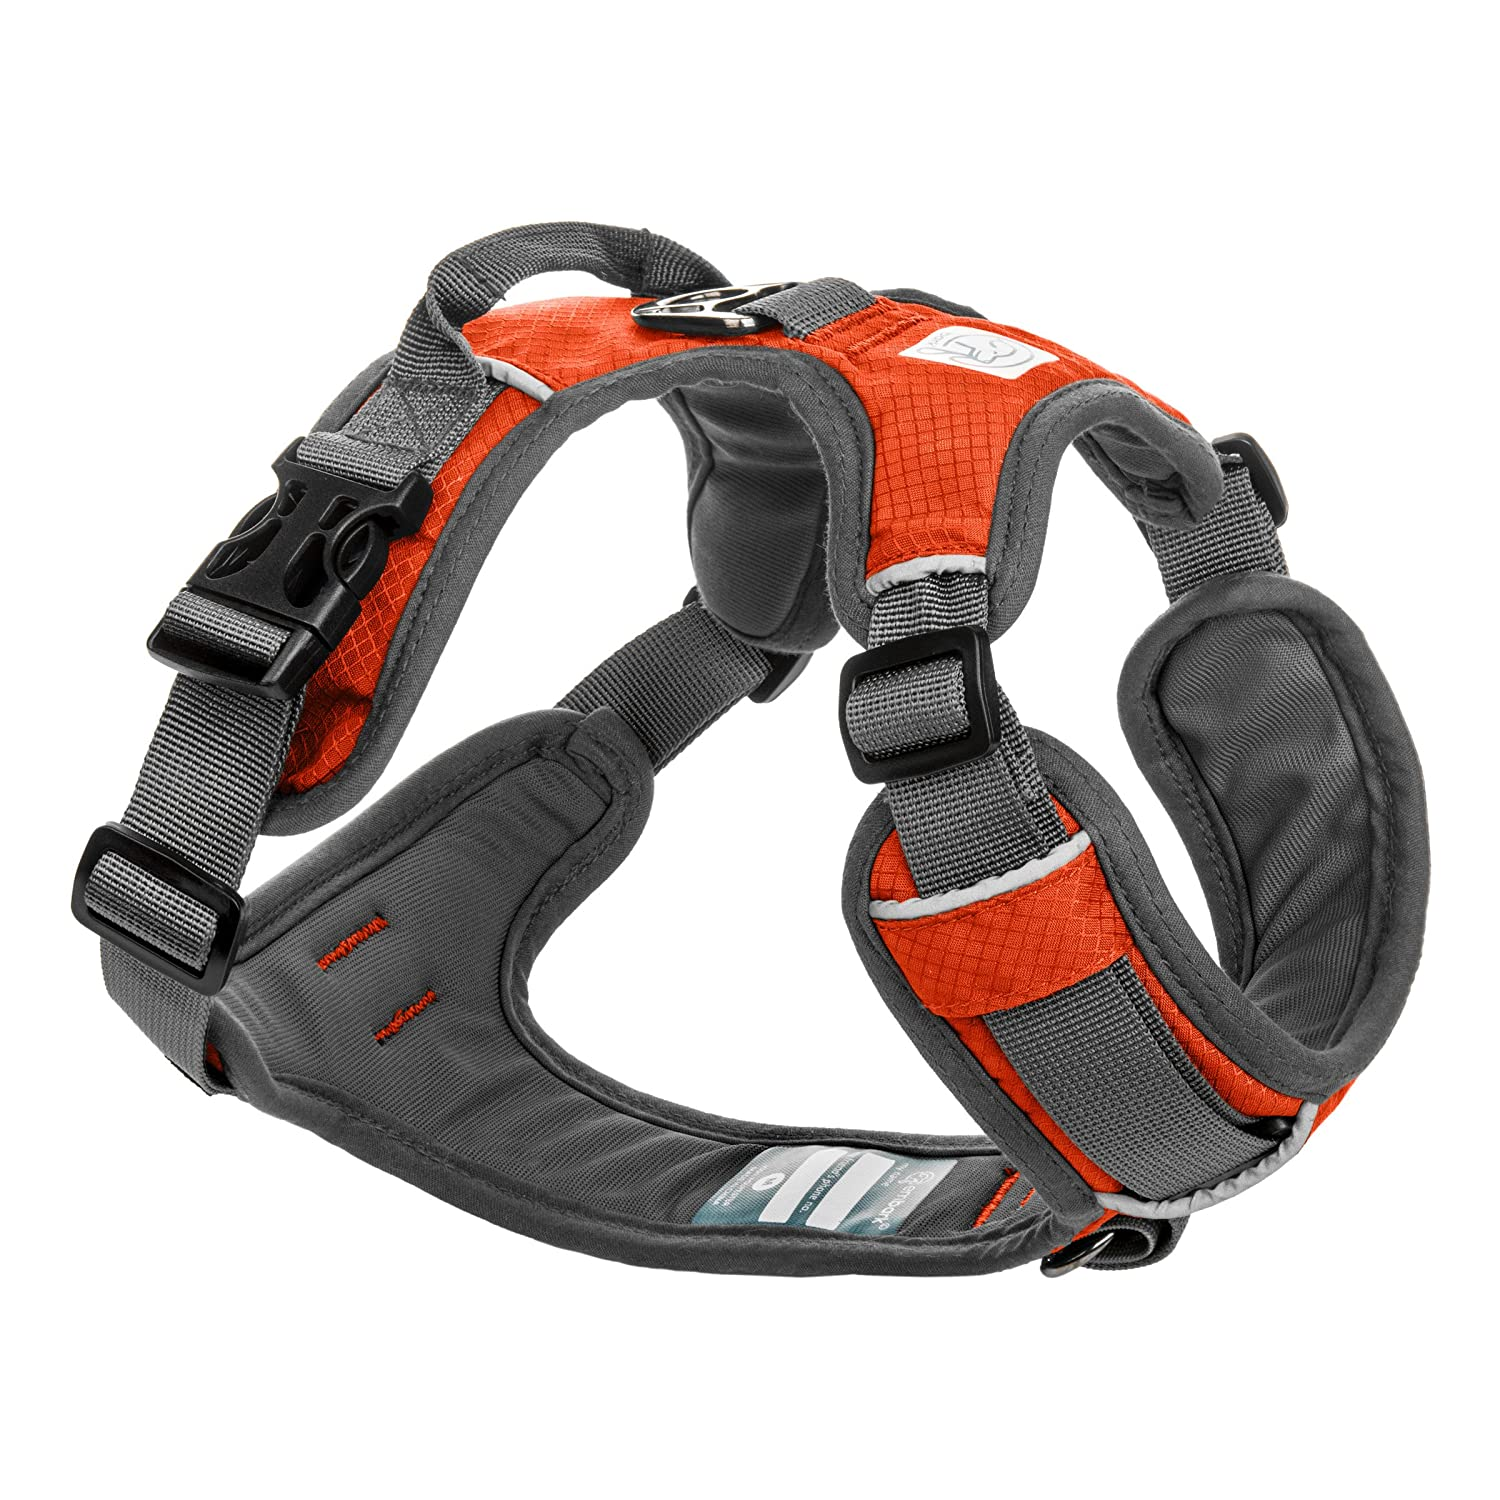 orange Medium orange Medium Embark Adventure Dog Harness, Easy On and Off with Front and Back Leash Attachment Points & Control Handle No Pull Training, Size Adjustable and No Choke Dog Walking Harness (Medium orange)